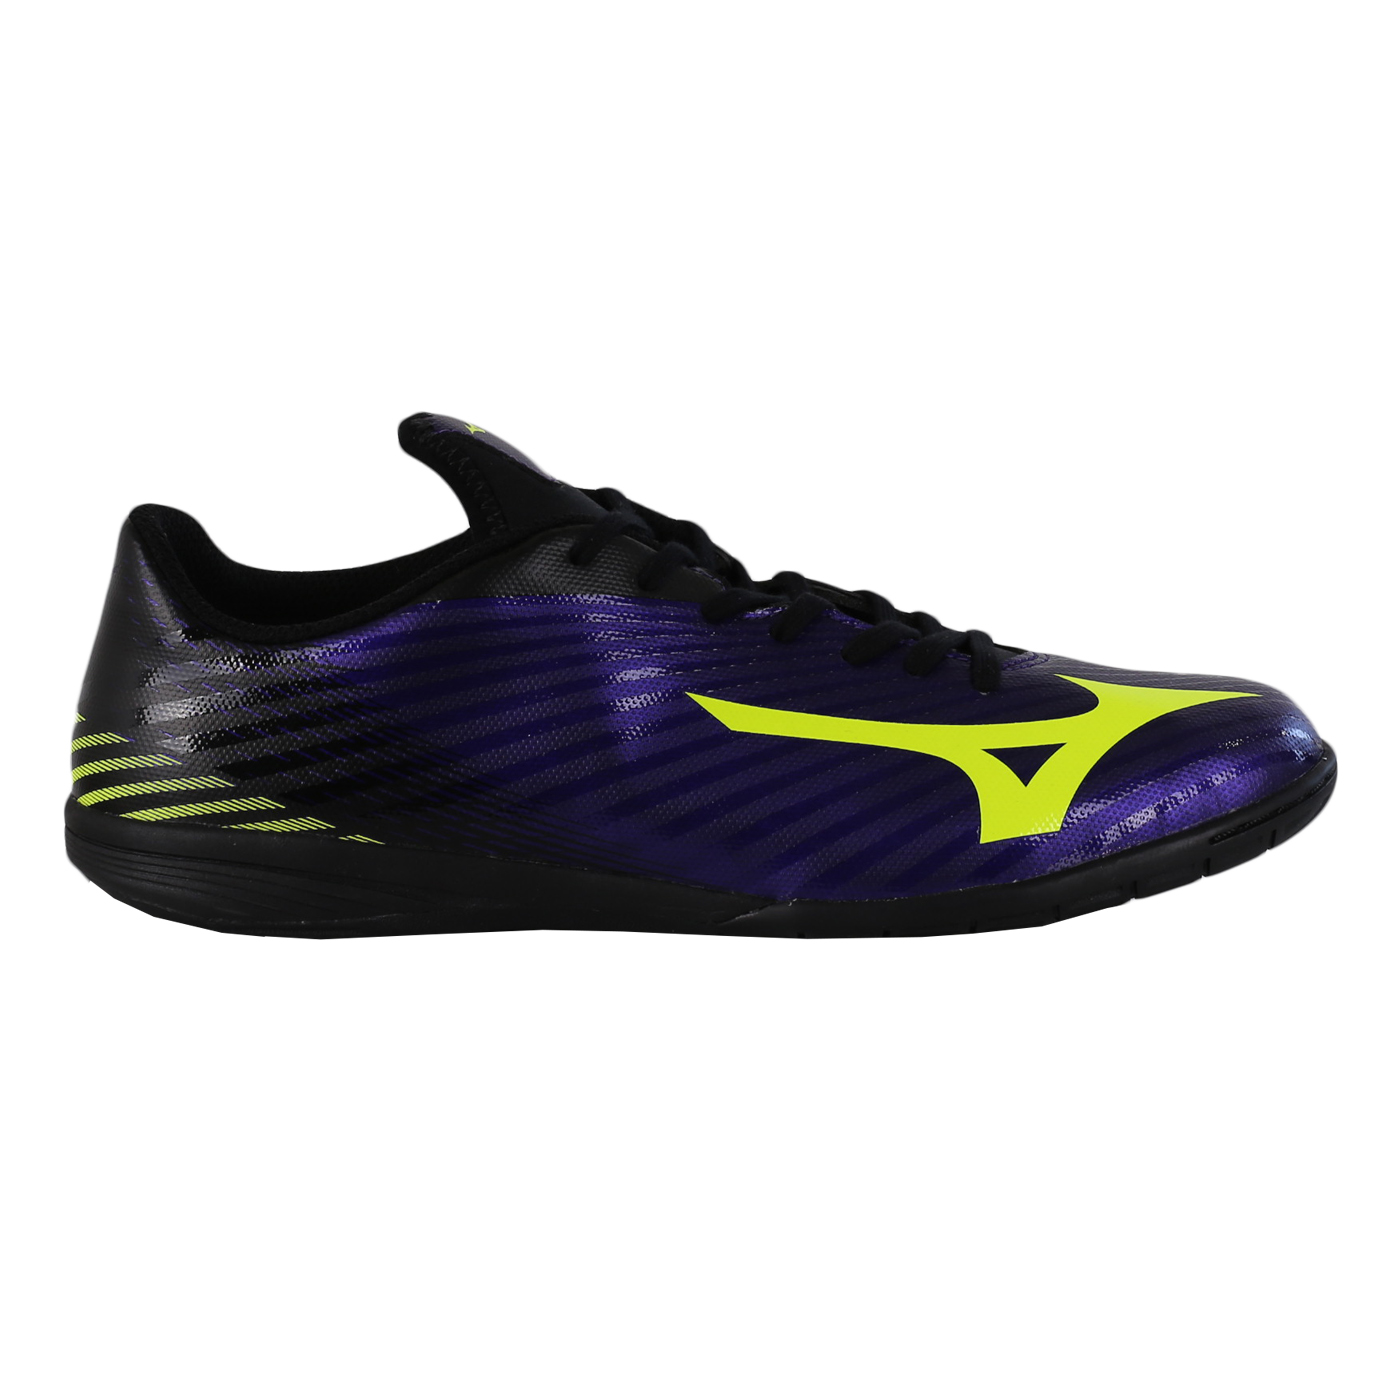 BASARA SALA SELECT IN - DEEP WISTERIA/ SAFETY YELLOW/ BLACK